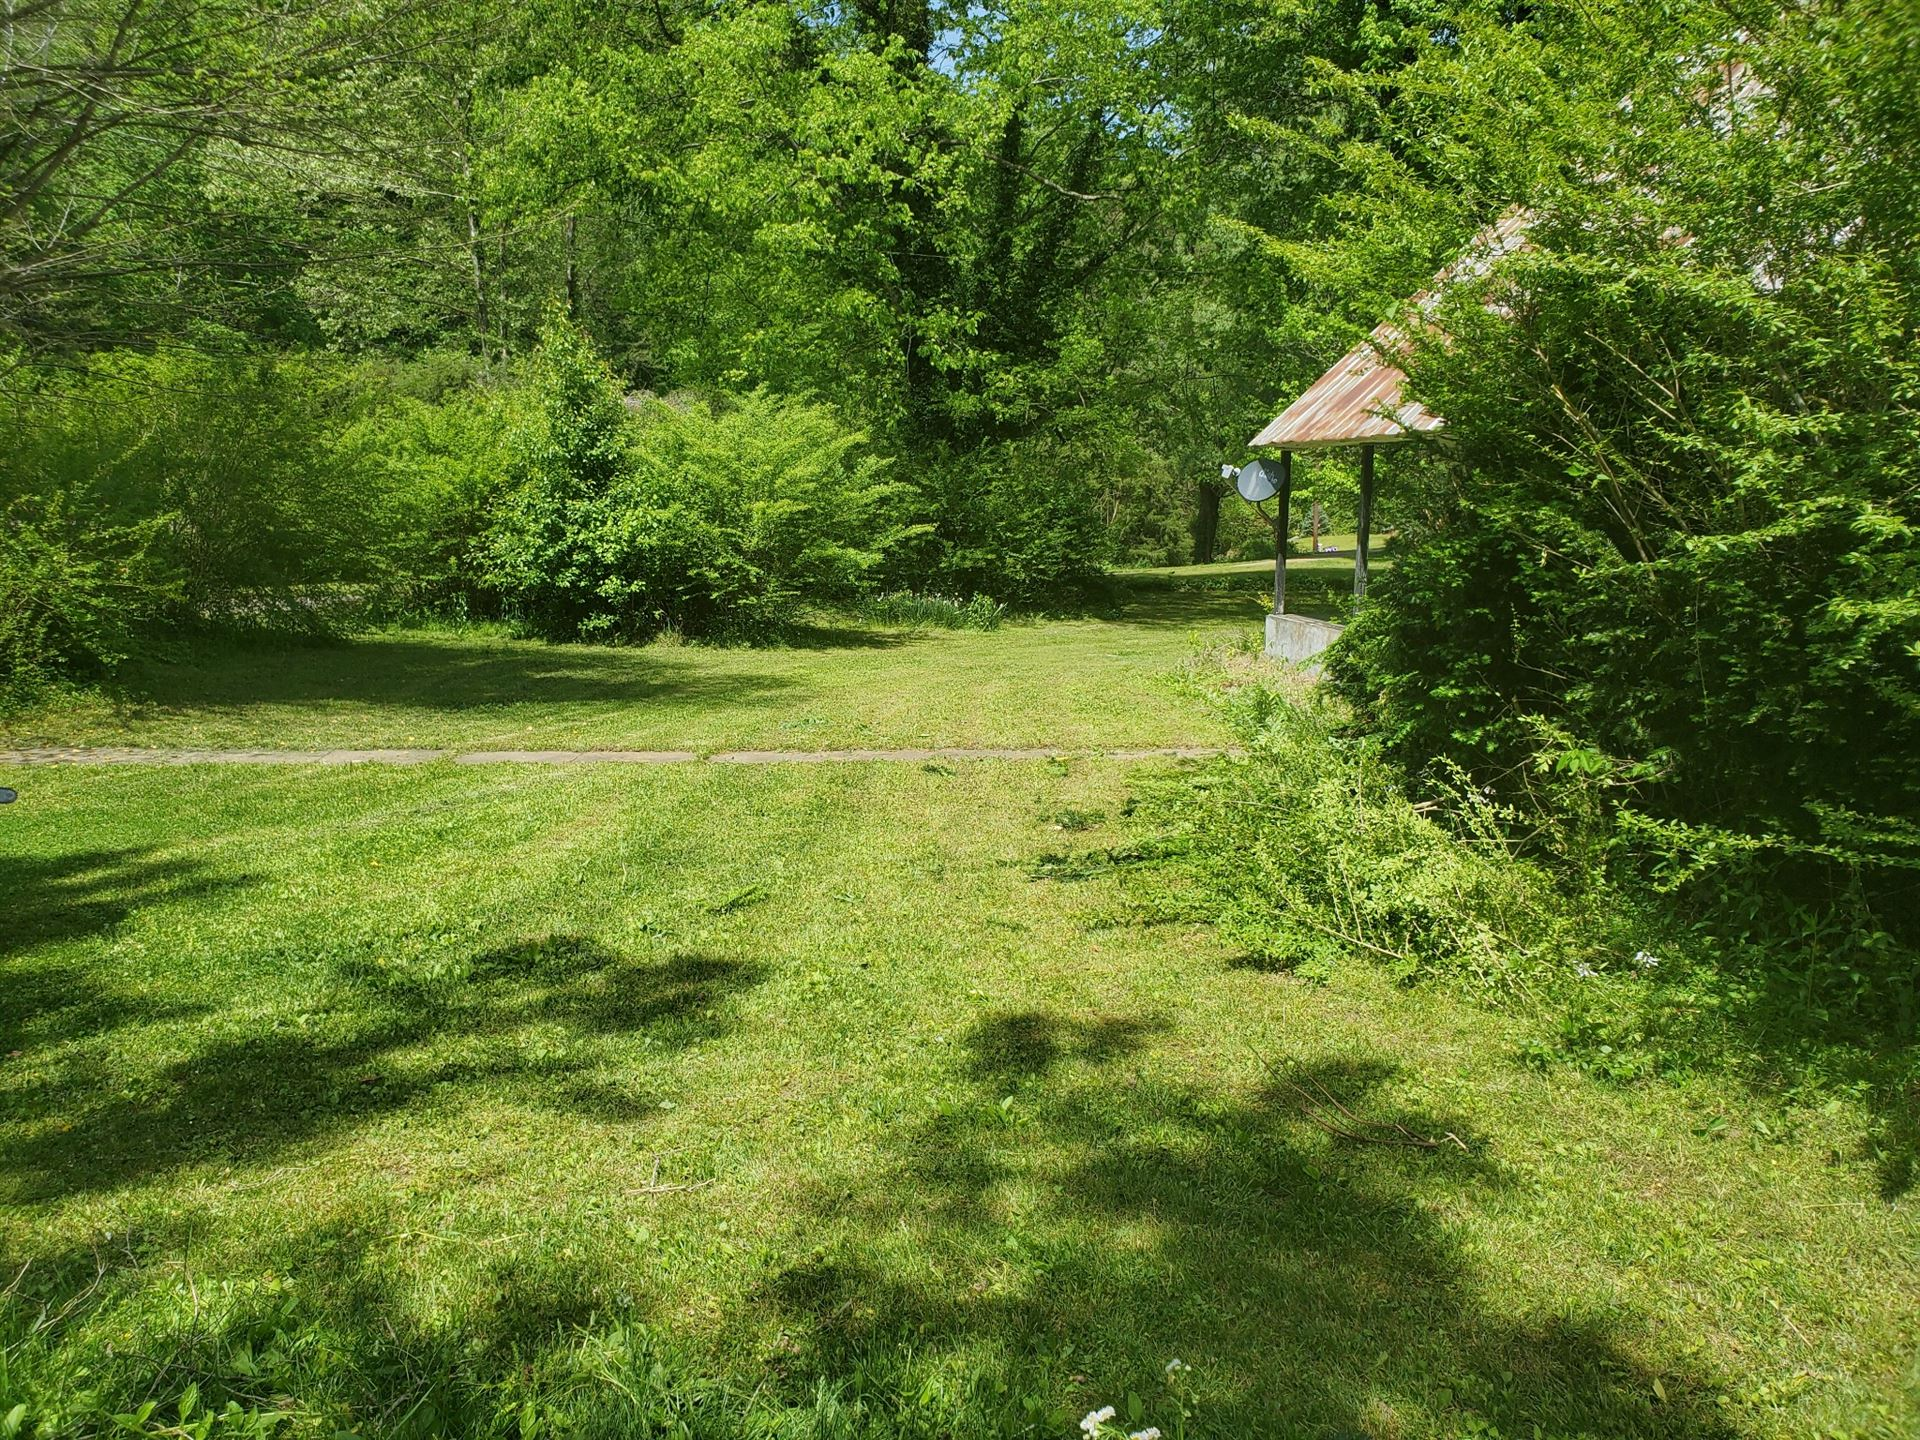 2204 Marion Rd, Only, TN 37140 - MLS#: 2251566